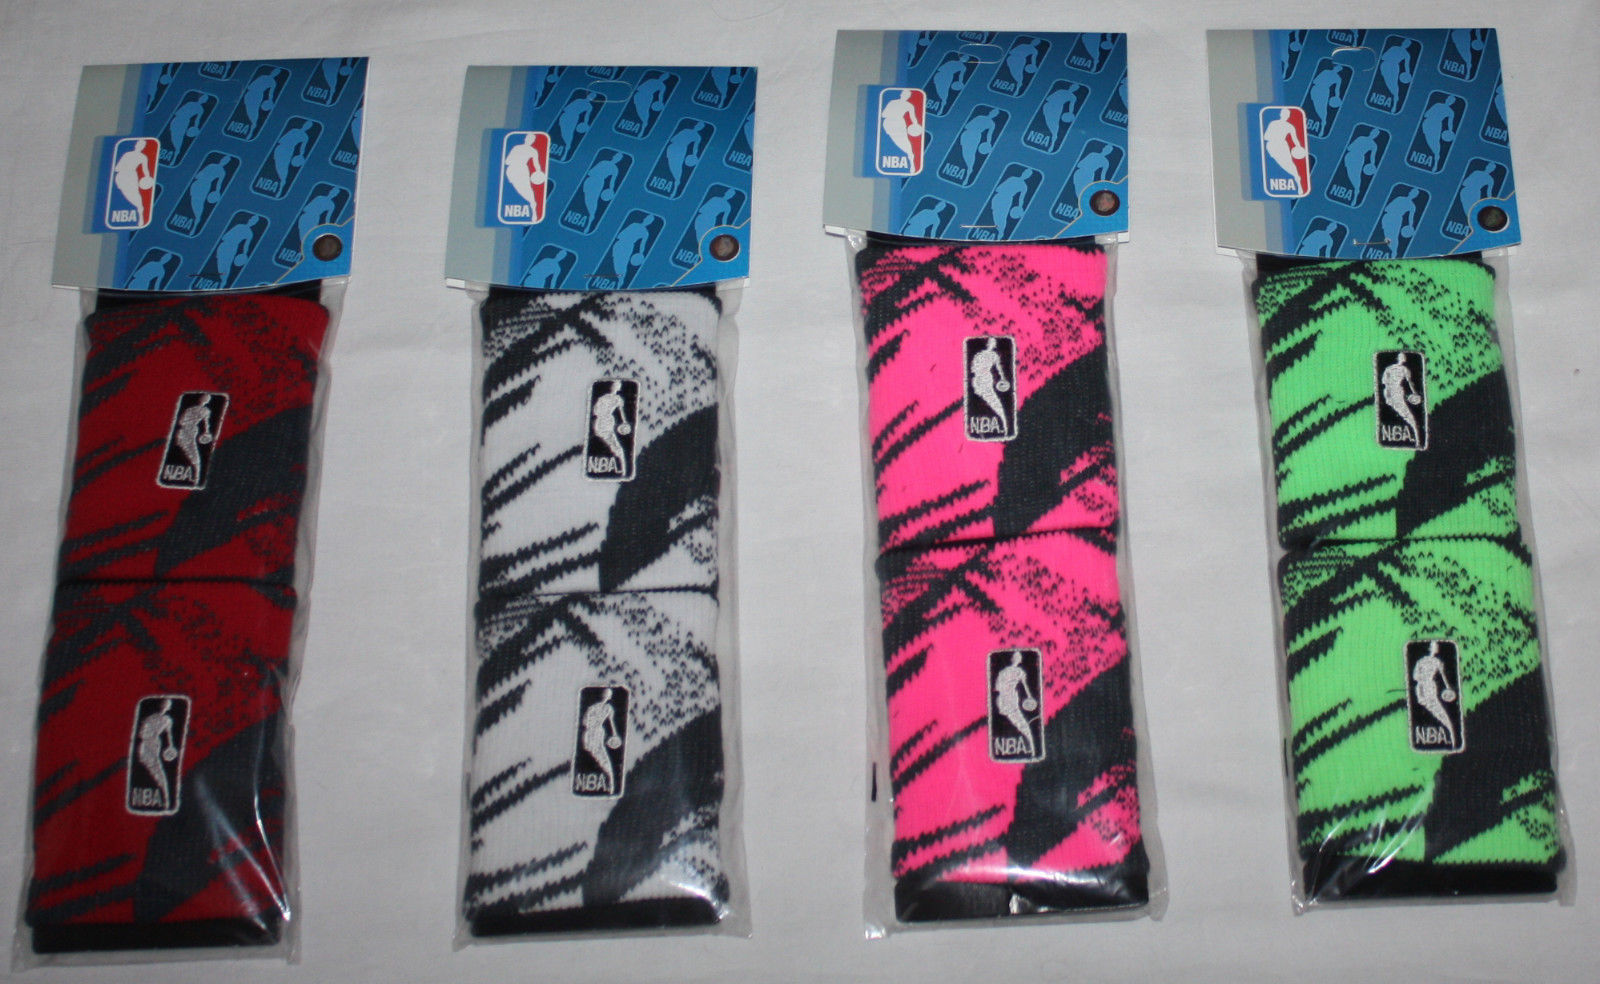 1 Pair NBA For Bare Feet Men's Camo Bright Wristbands 09357